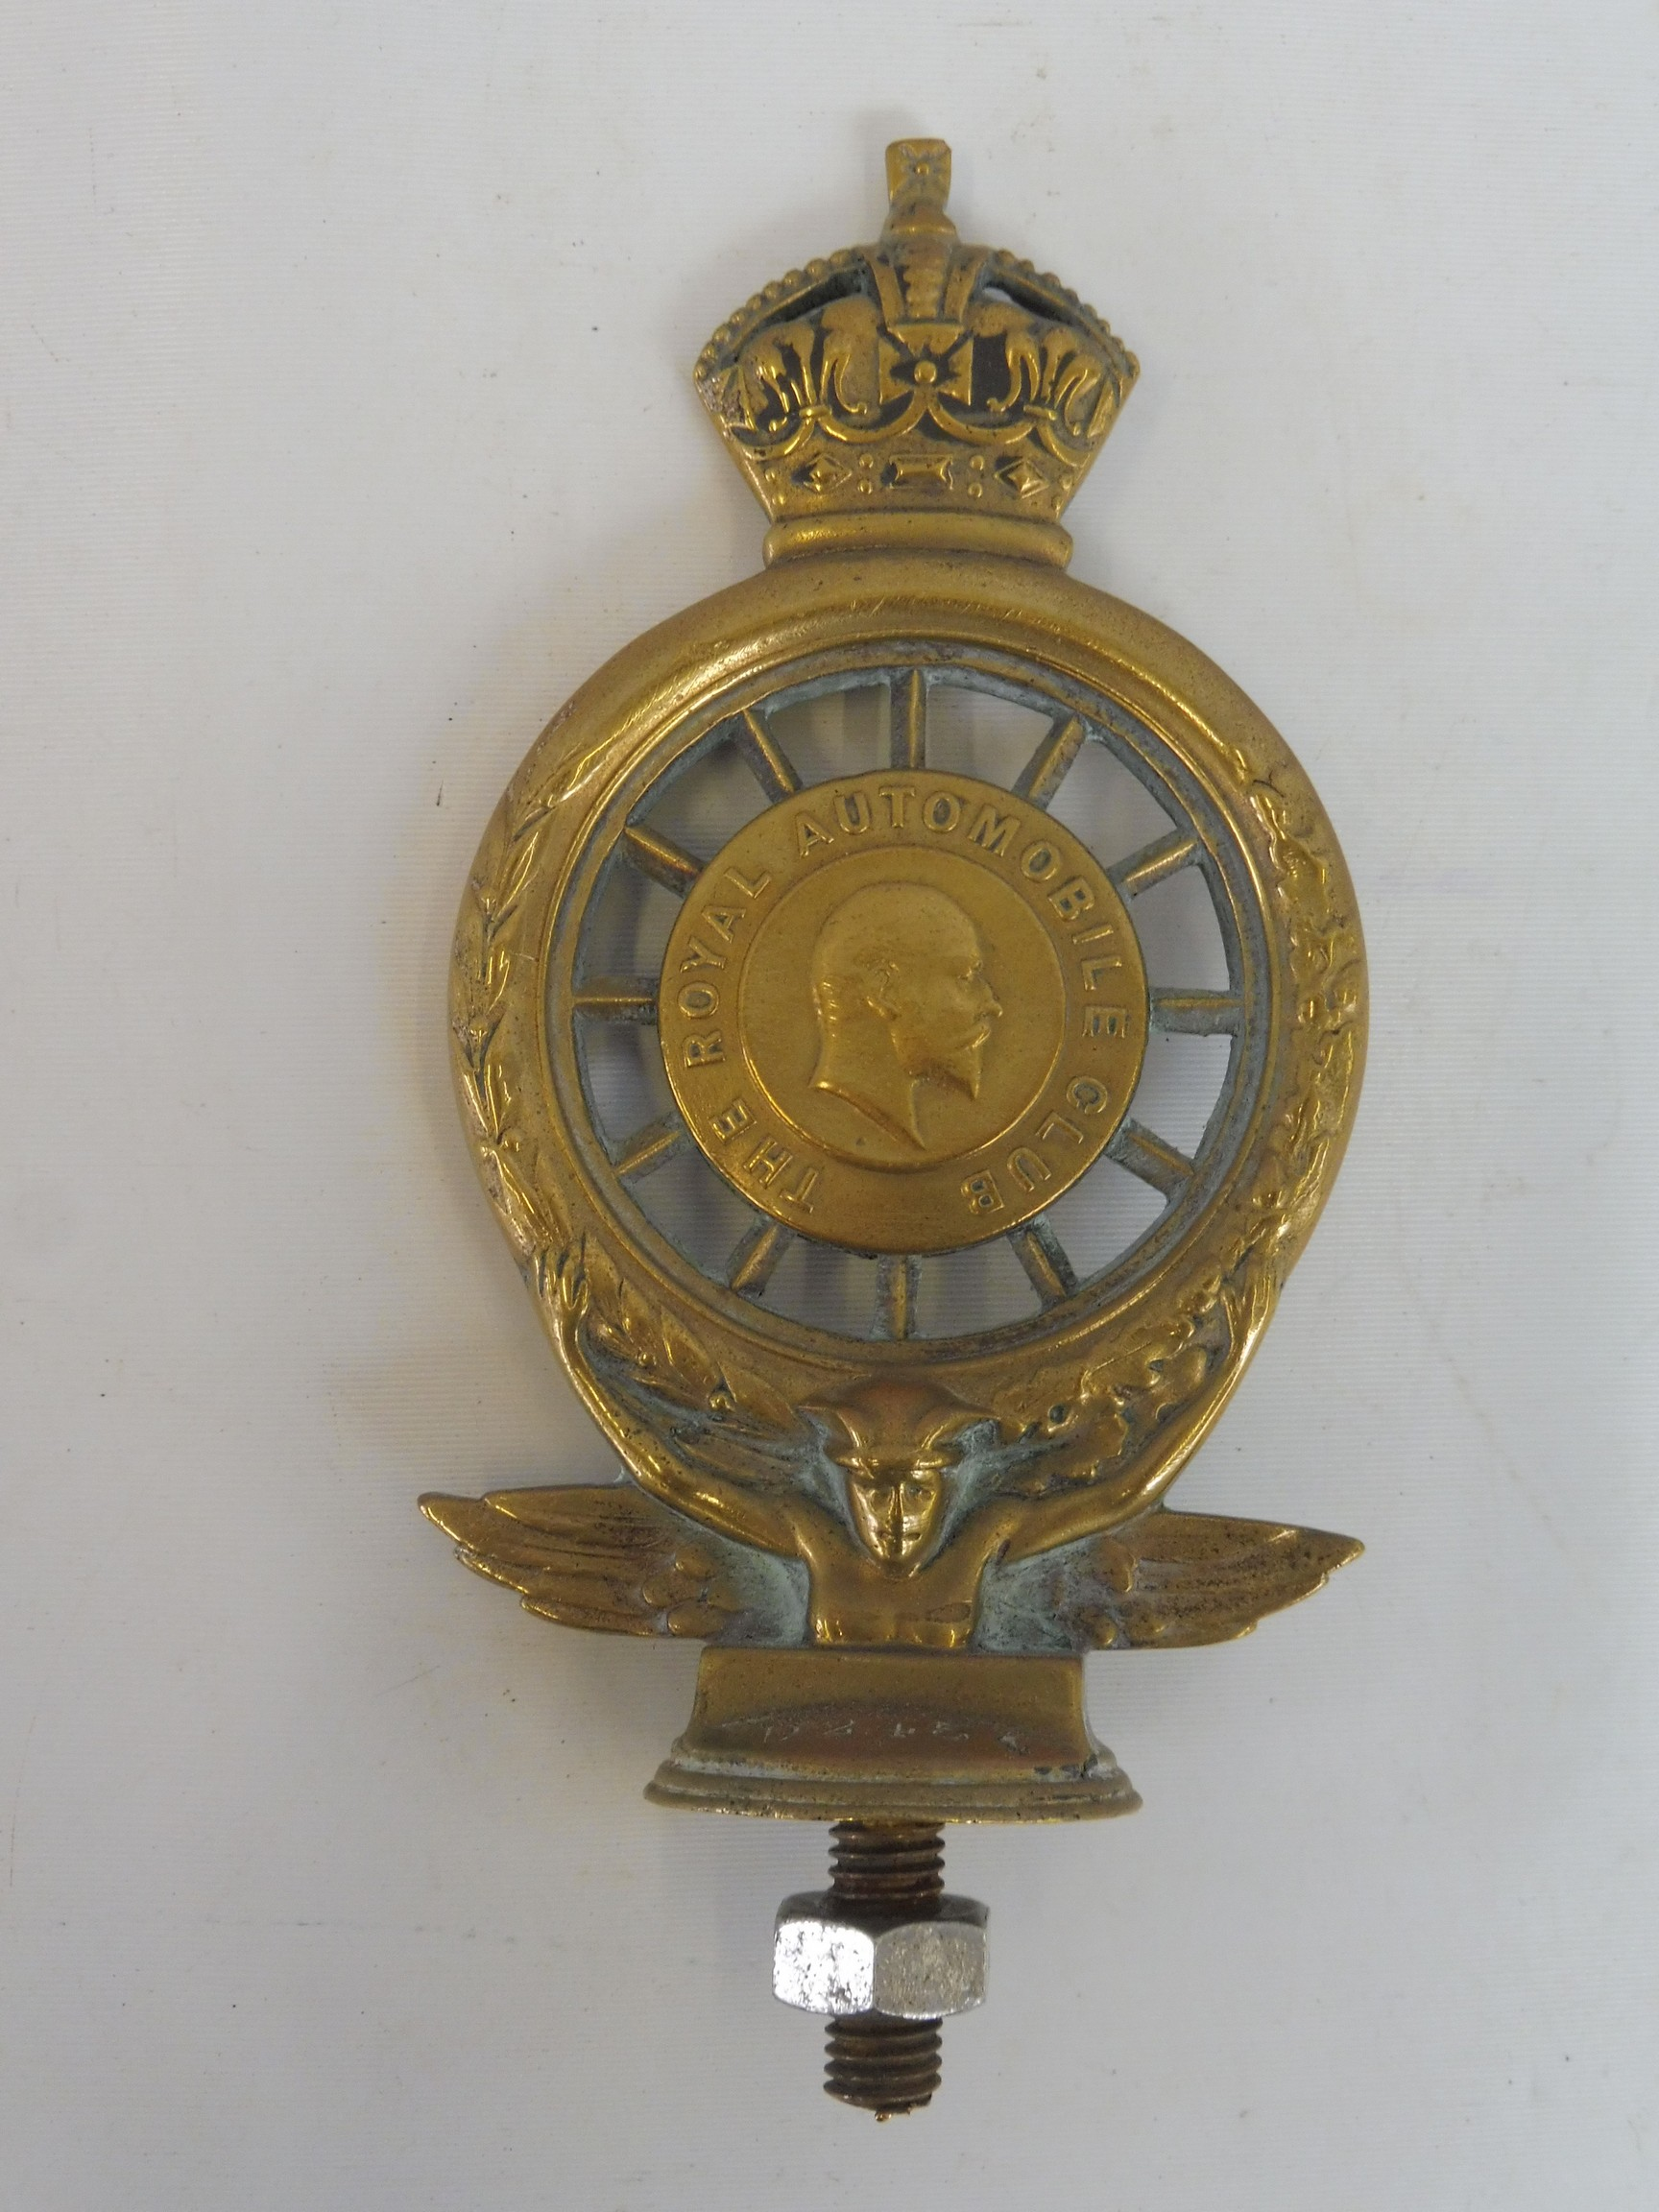 A Royal Automobile Club full member badge, open crown version type 5, plain brass with enamel - Image 4 of 4